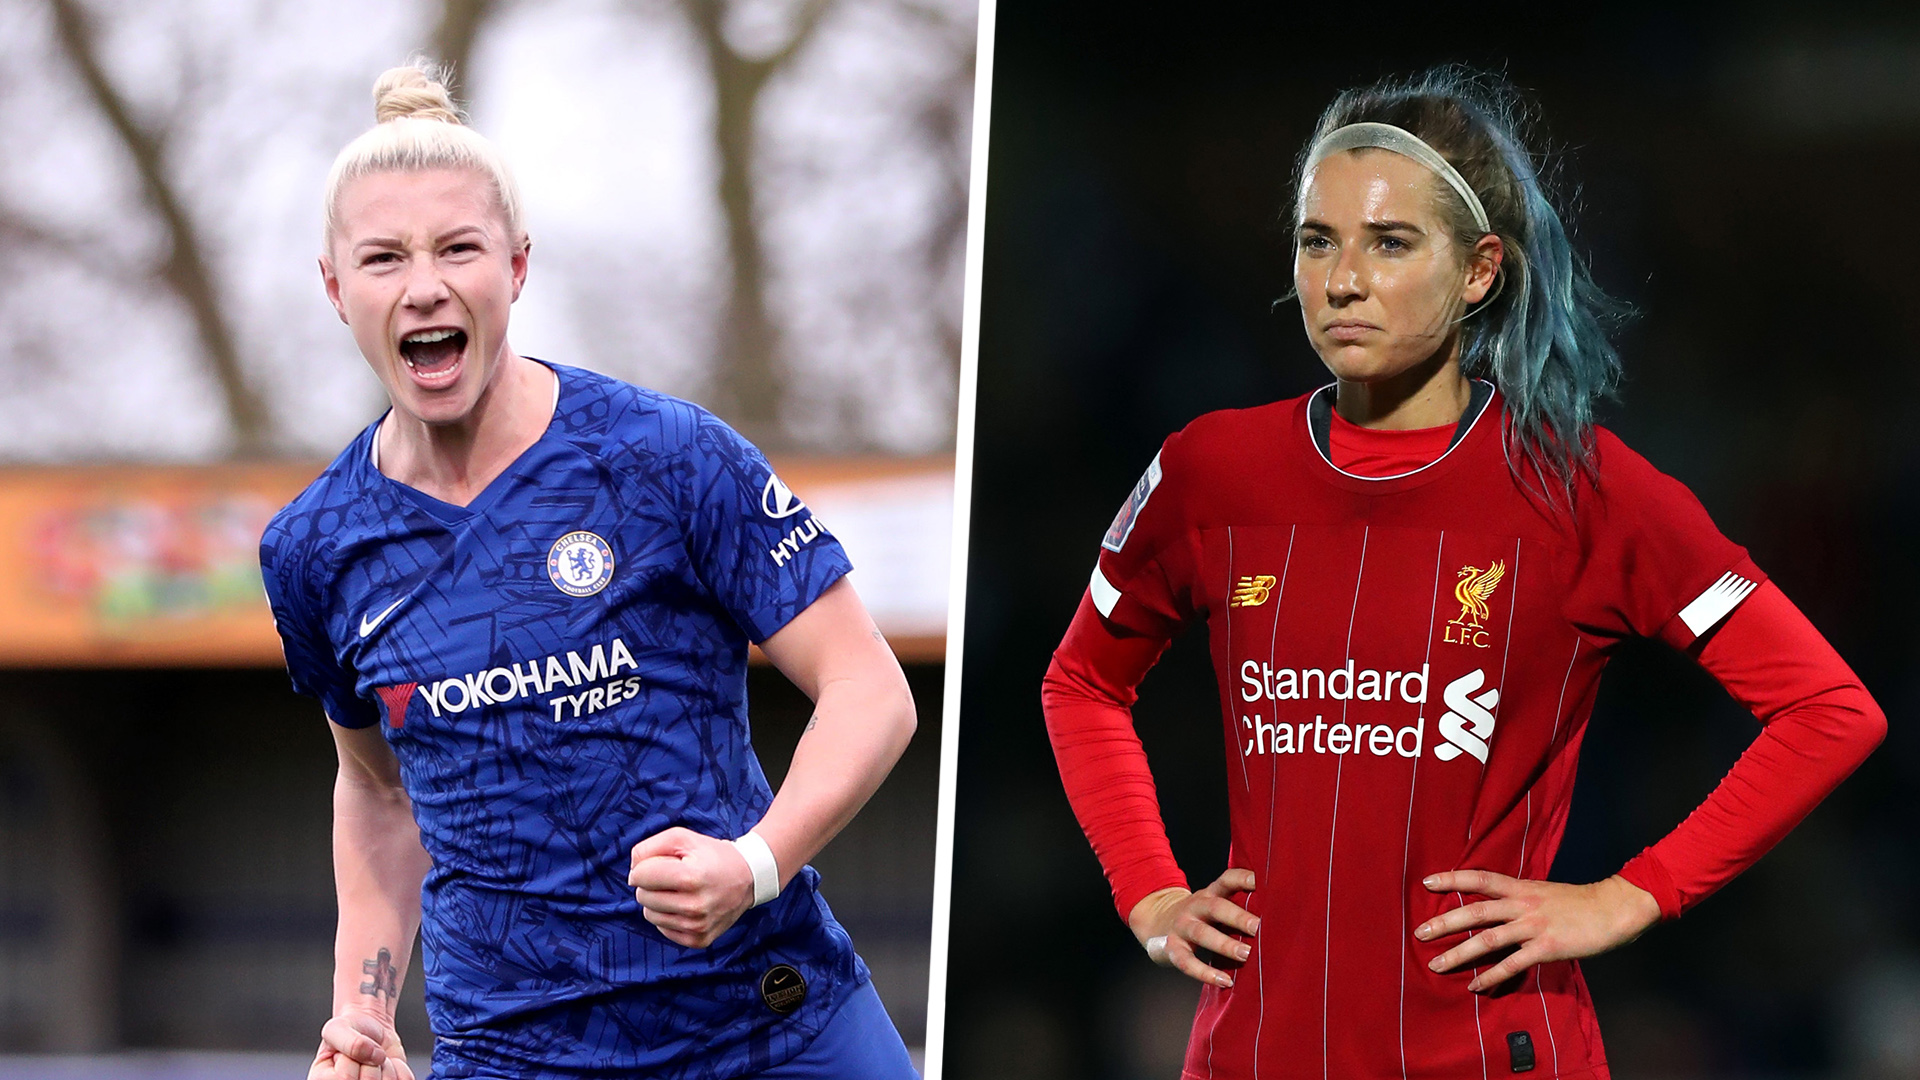 Chelsea handed Women's Super League title on points-per-game basis